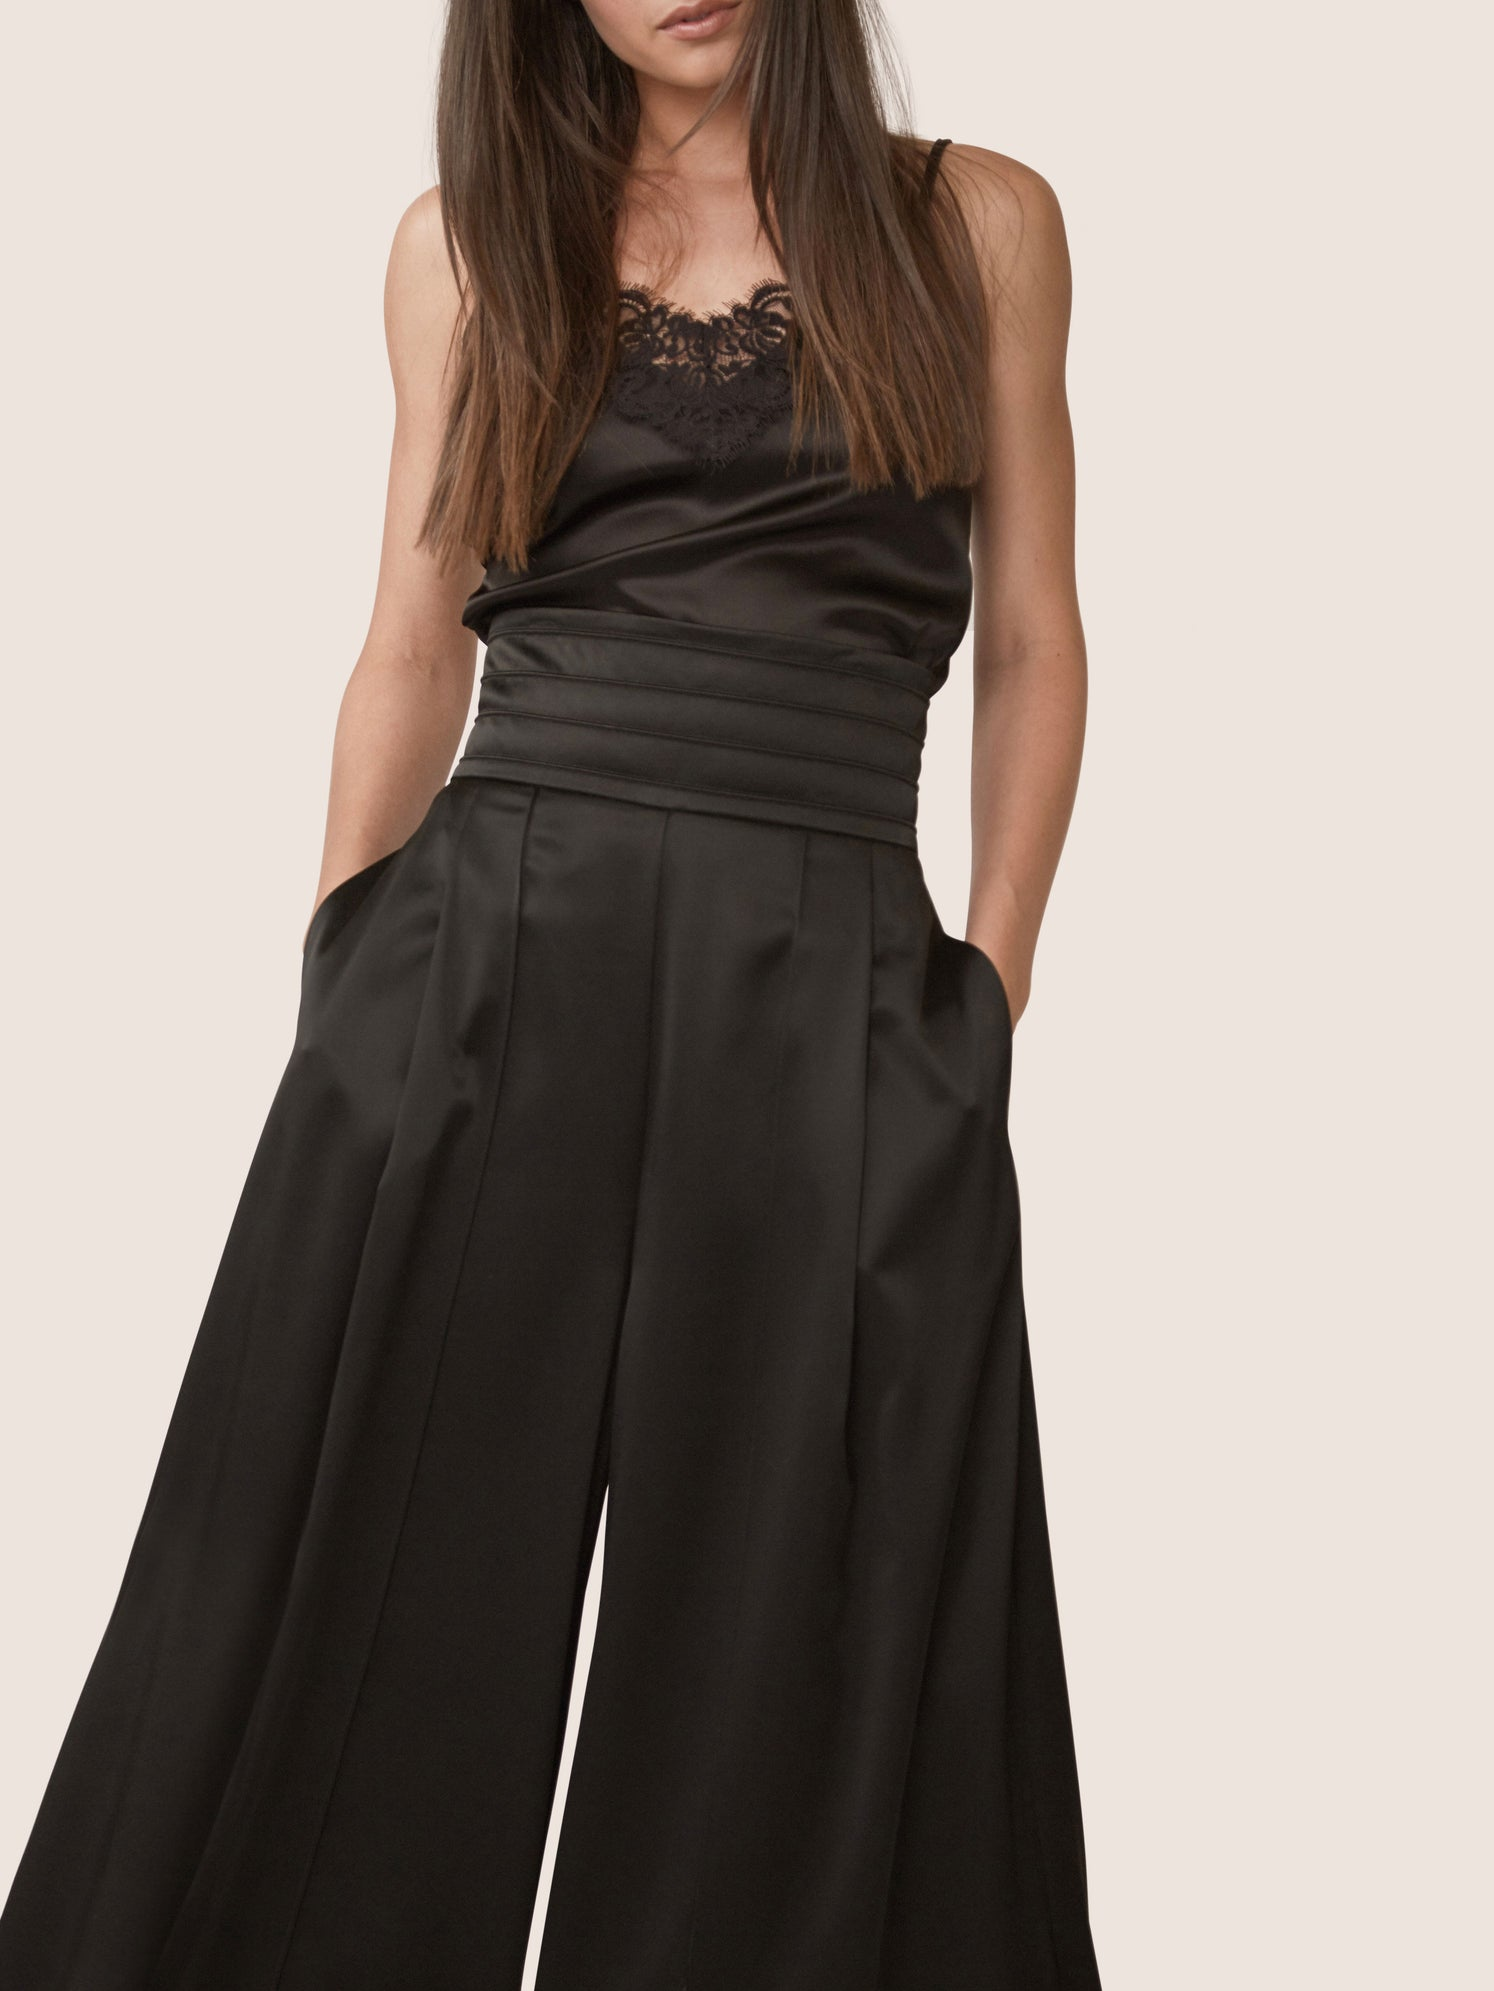 High waistline of black satin wide leg pant with front slit Alternate